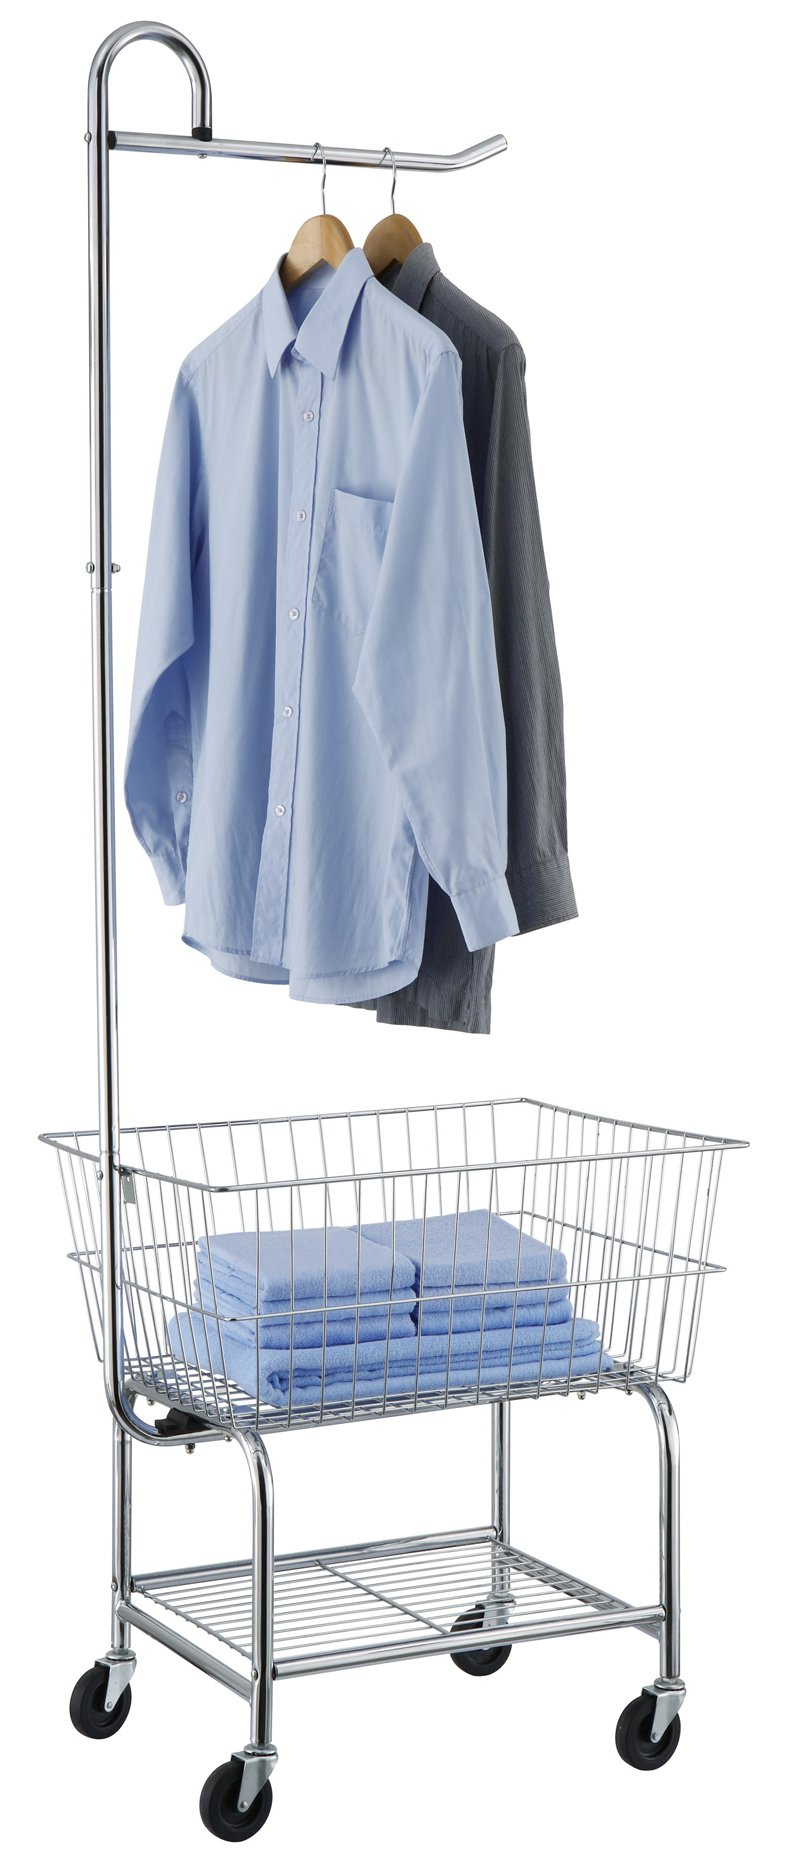 Organize It All 17167W-1 Laundry Butler, Chrome by Organize It All